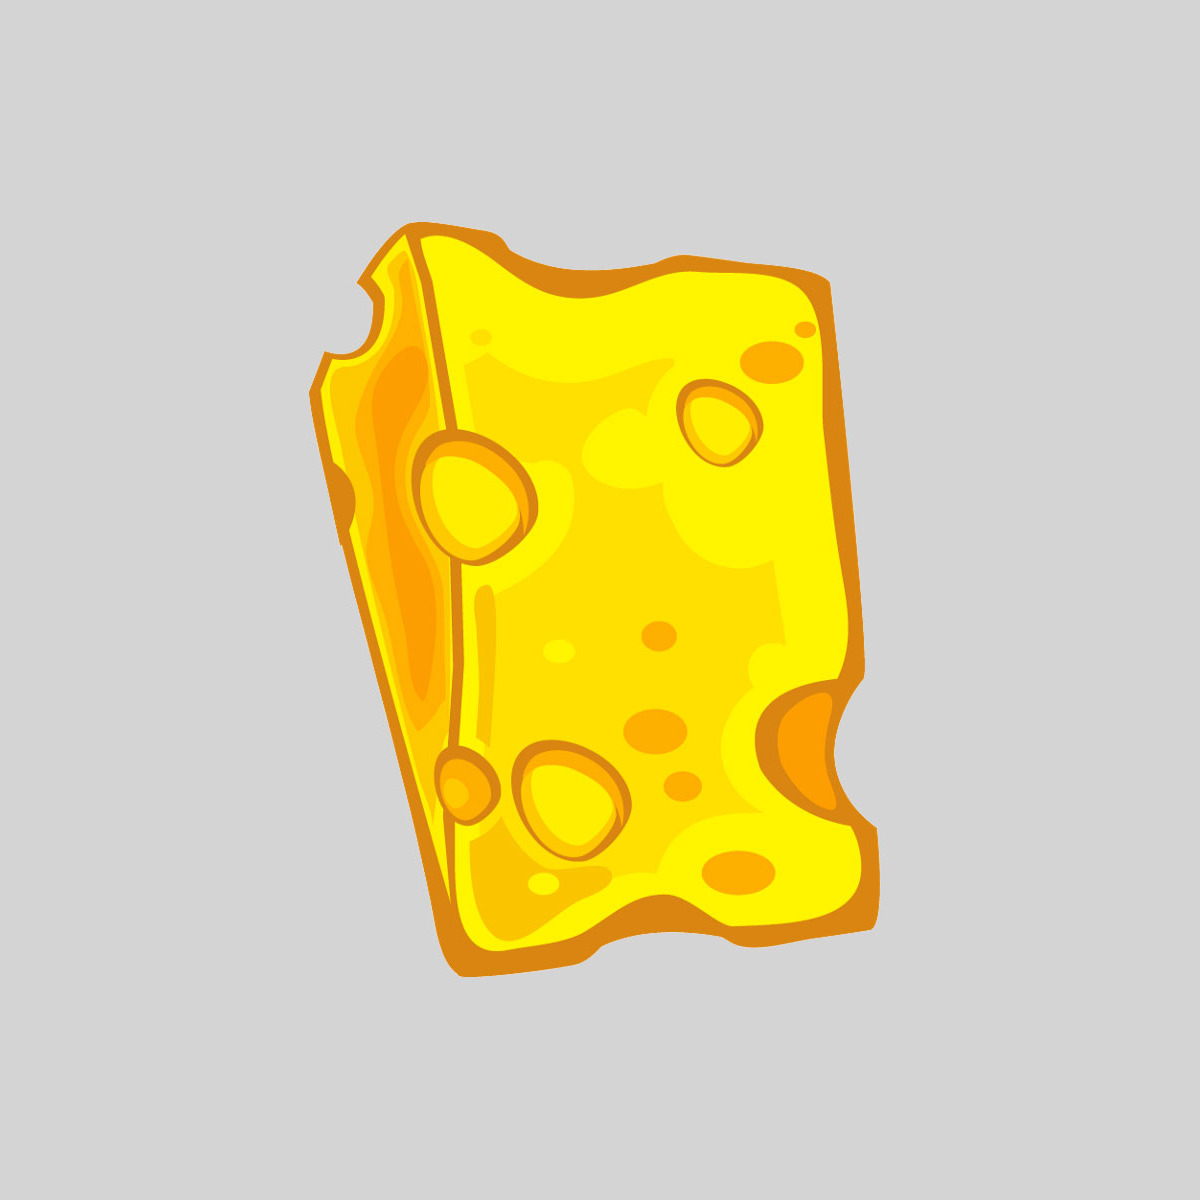 Cheddar, Whose Logo Is Swiss Cheese, Acquired by Altice USA.